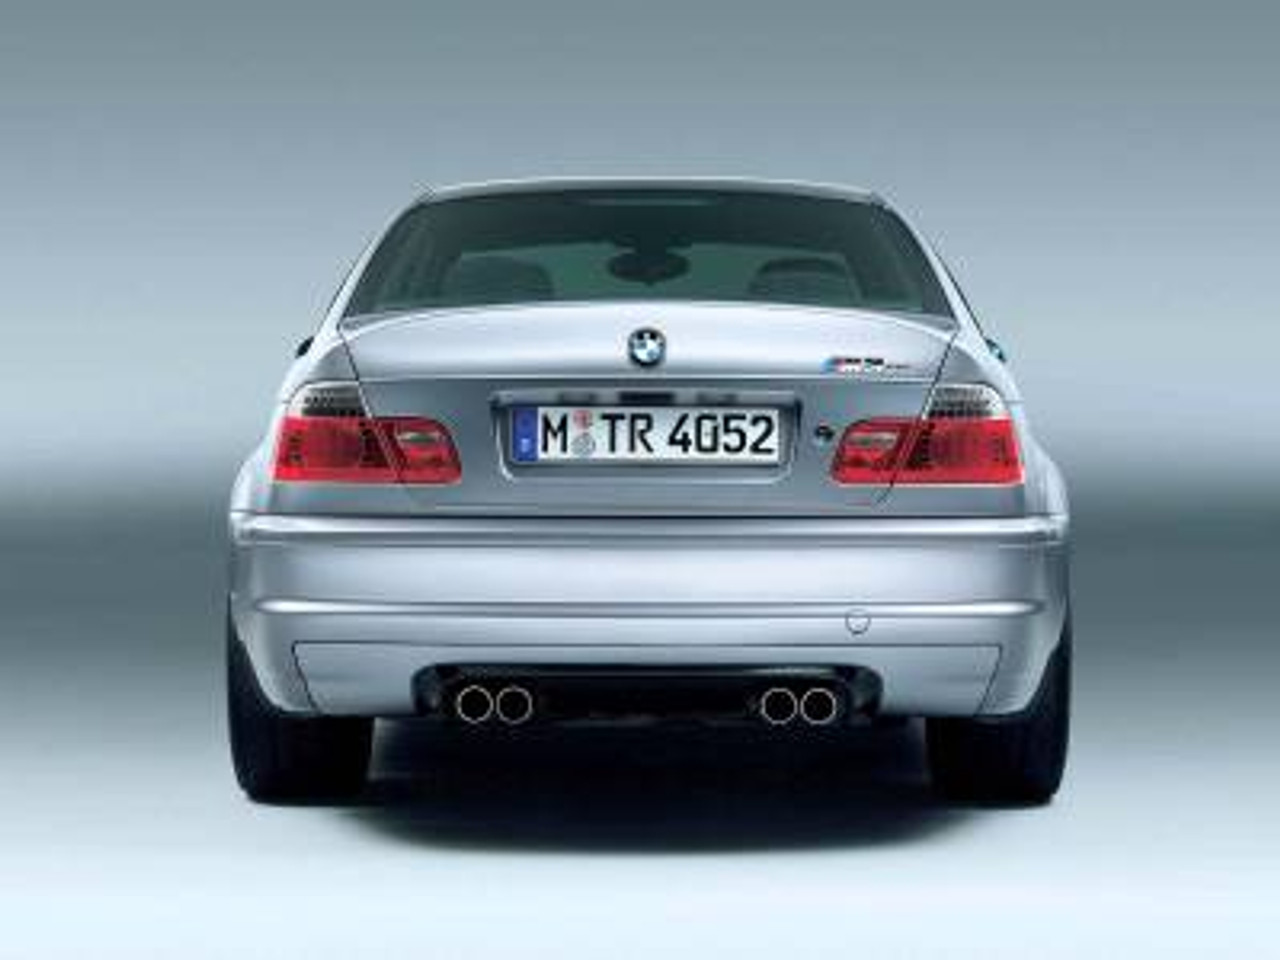 Csl Full Body Kit Package For 1999 2006 Bmw 3 Series M3 Coupe E46